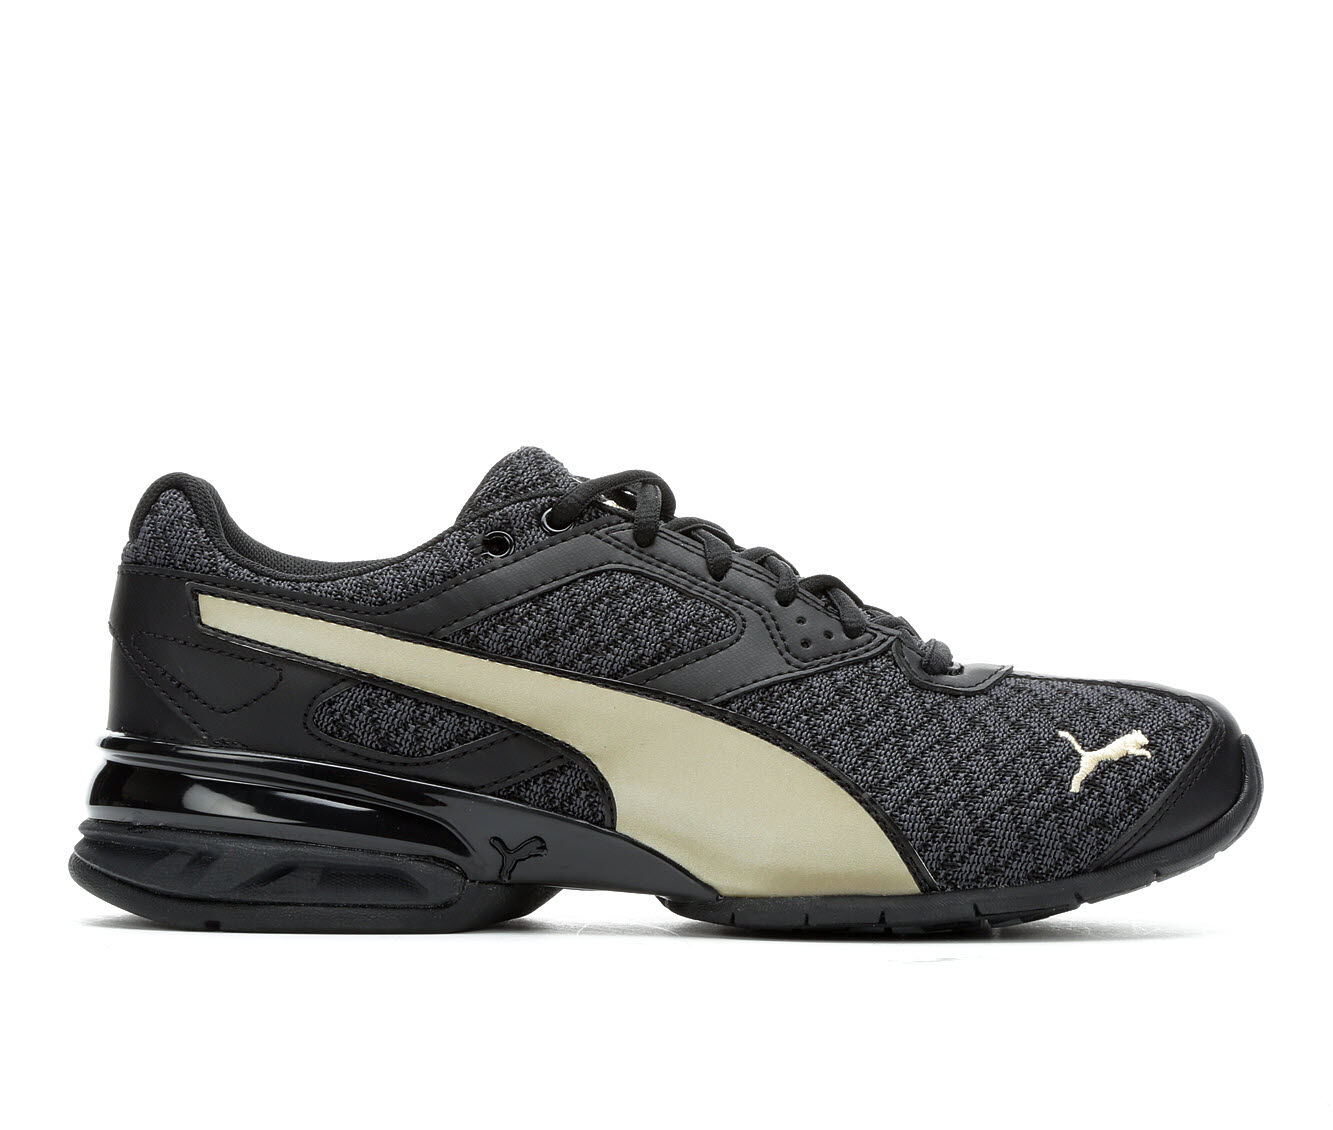 Women's Puma Tazon 6 Luxe Running Shoes Black/Gold